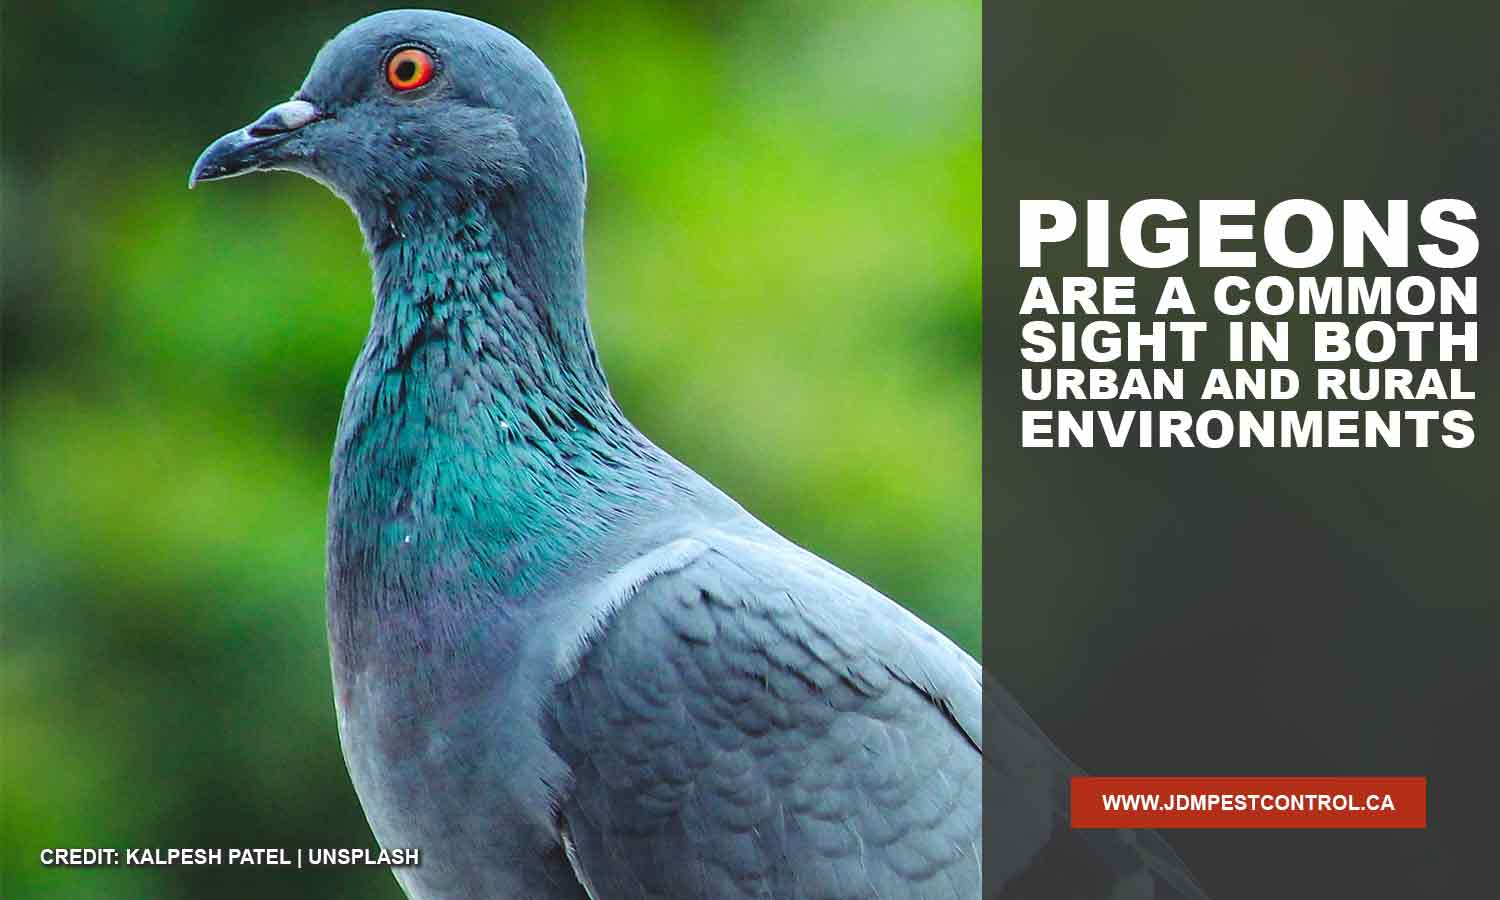 Pigeons are a common sight in both urban and rural environments